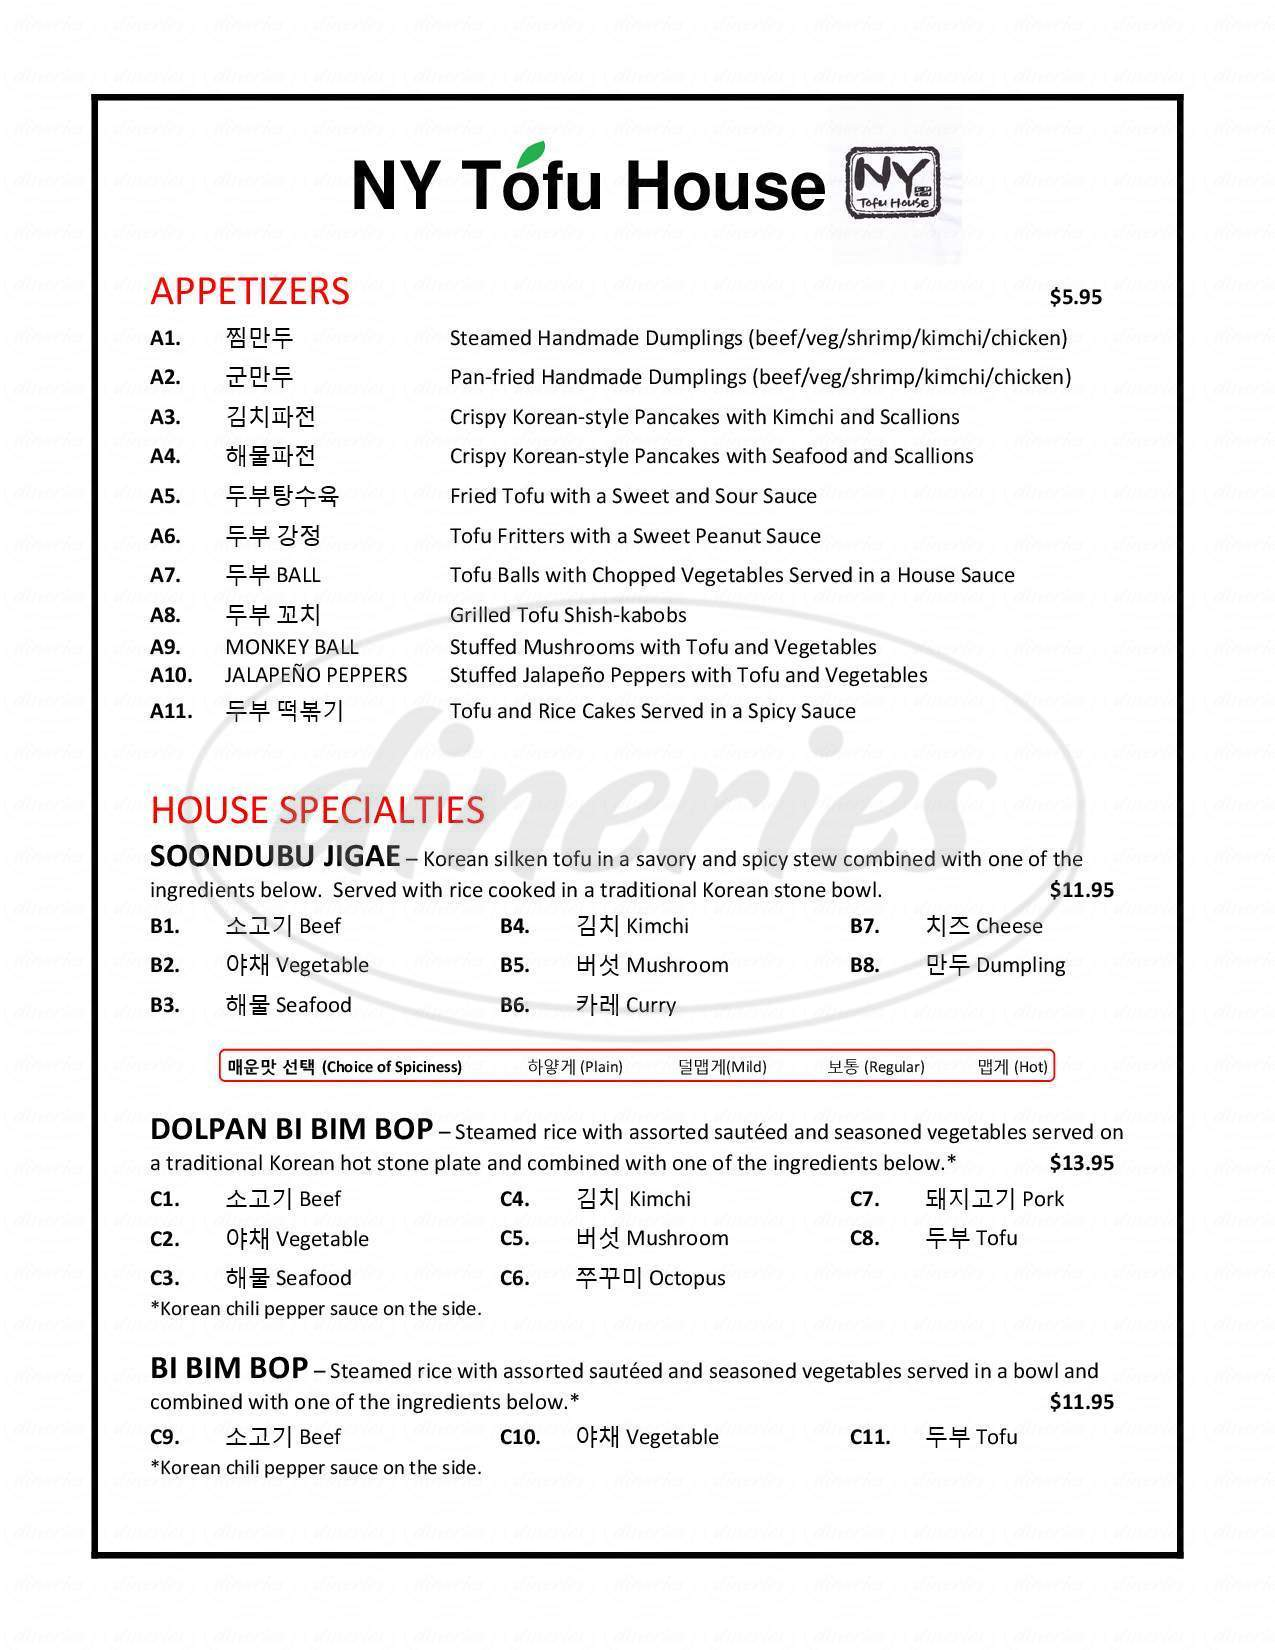 menu for NY Tofu House